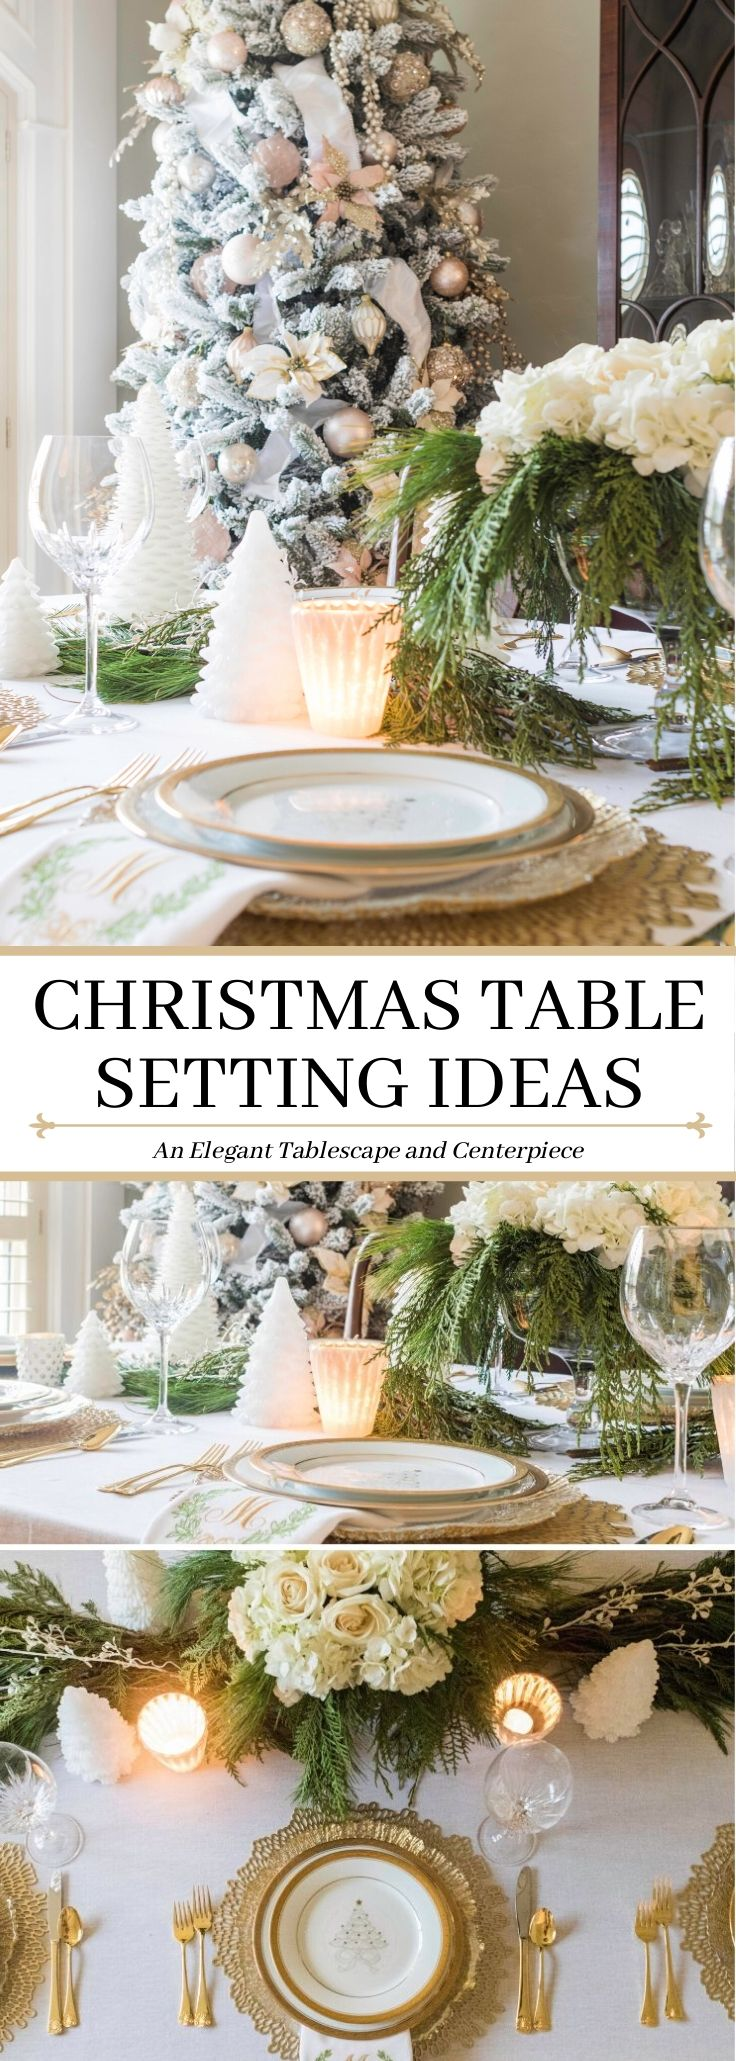 Image of: Elegant Christmas Table Setting Ideas Home Design Jennifer Maune